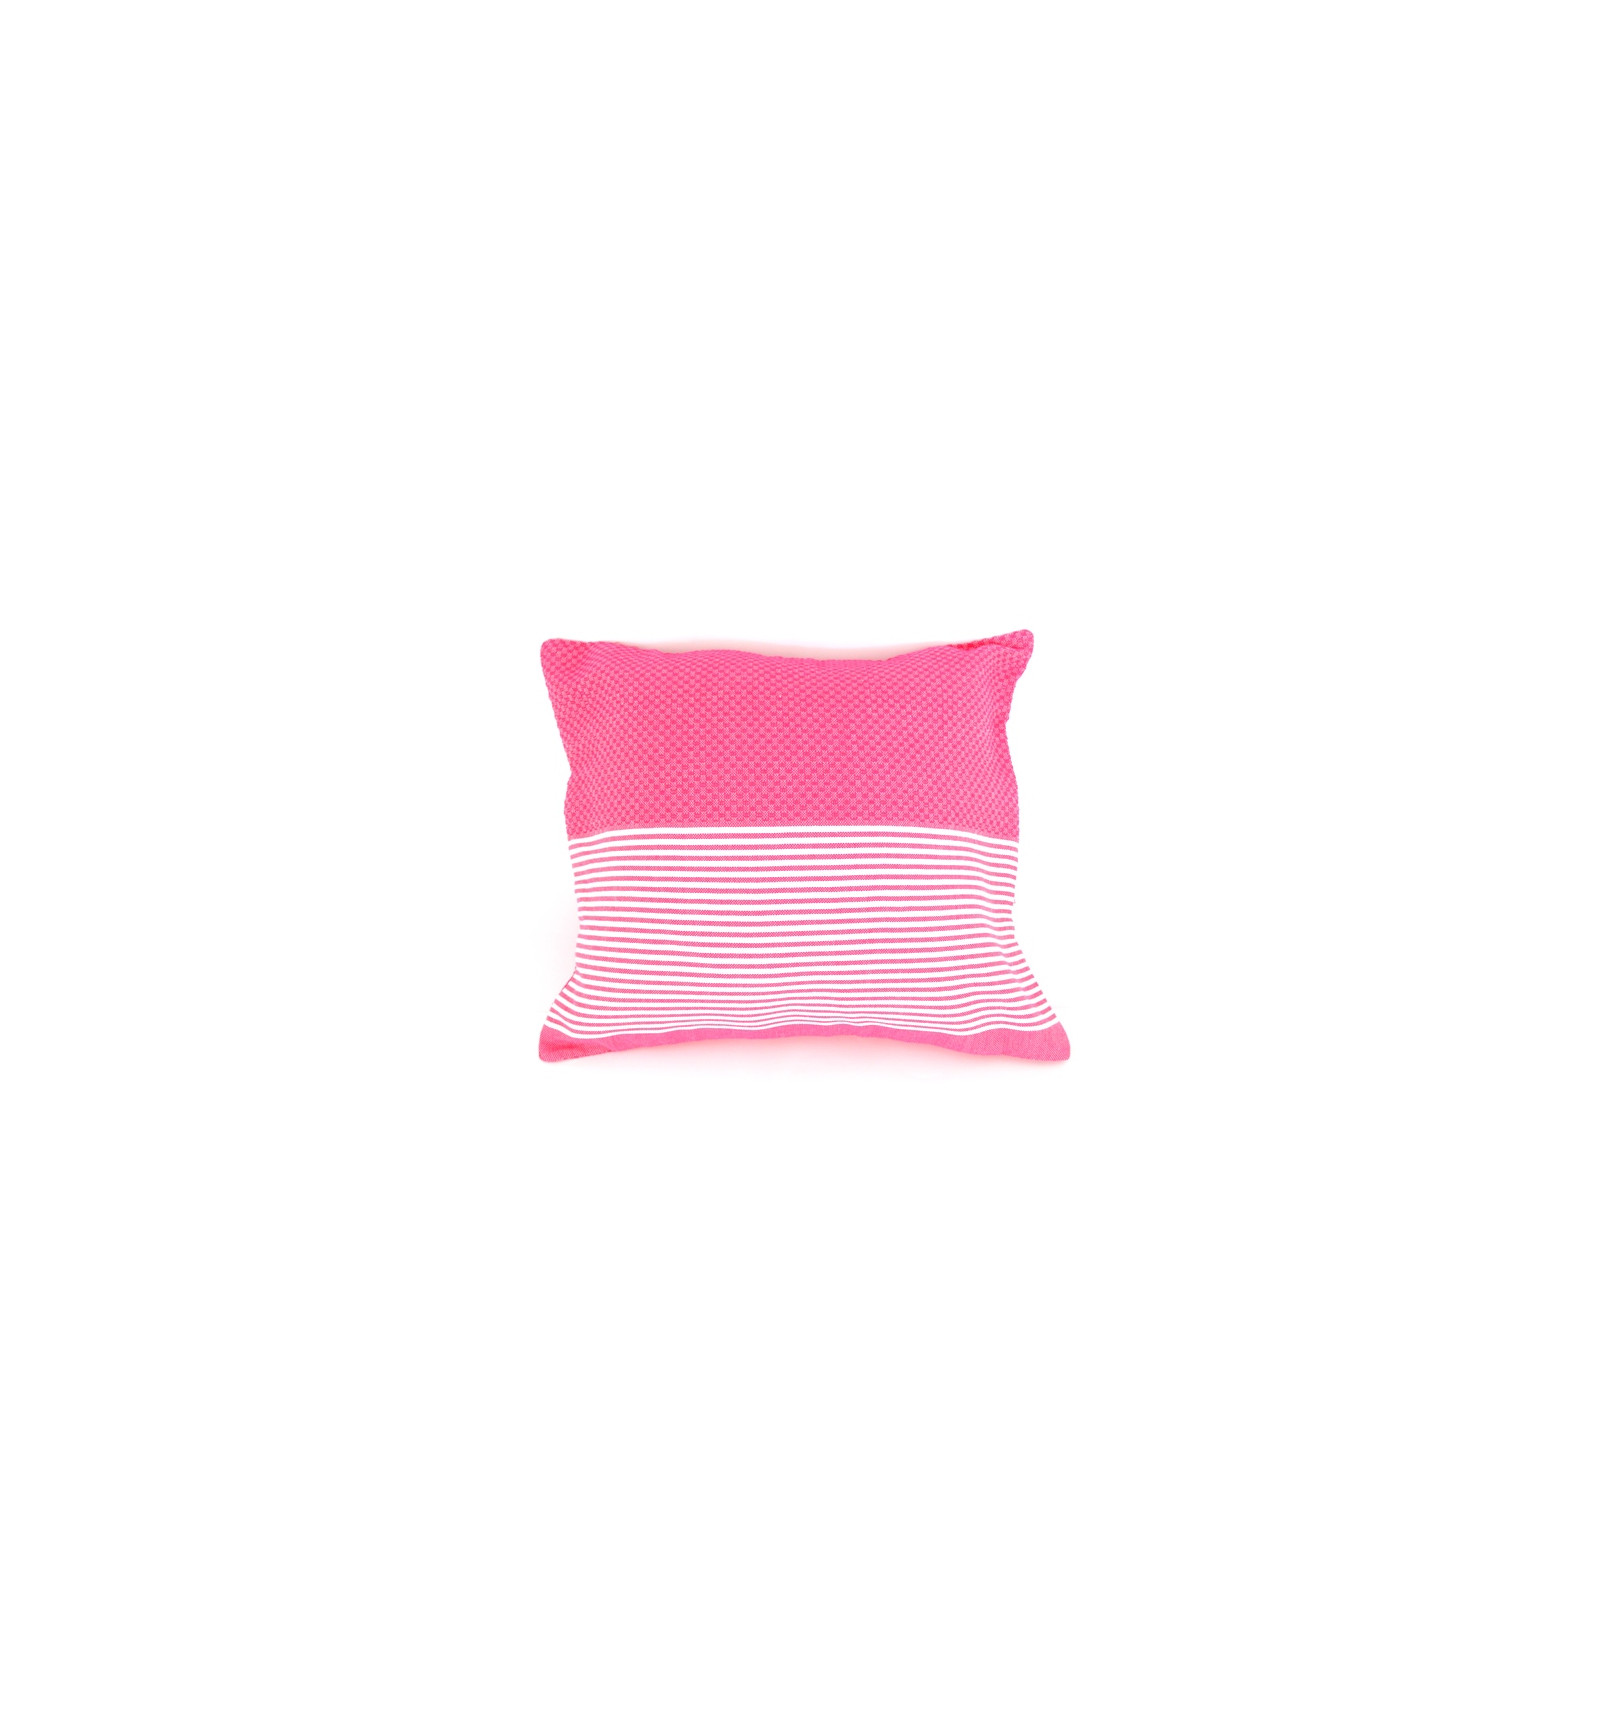 housse de coussin 40x40 fouta rose fushia lartisanet. Black Bedroom Furniture Sets. Home Design Ideas